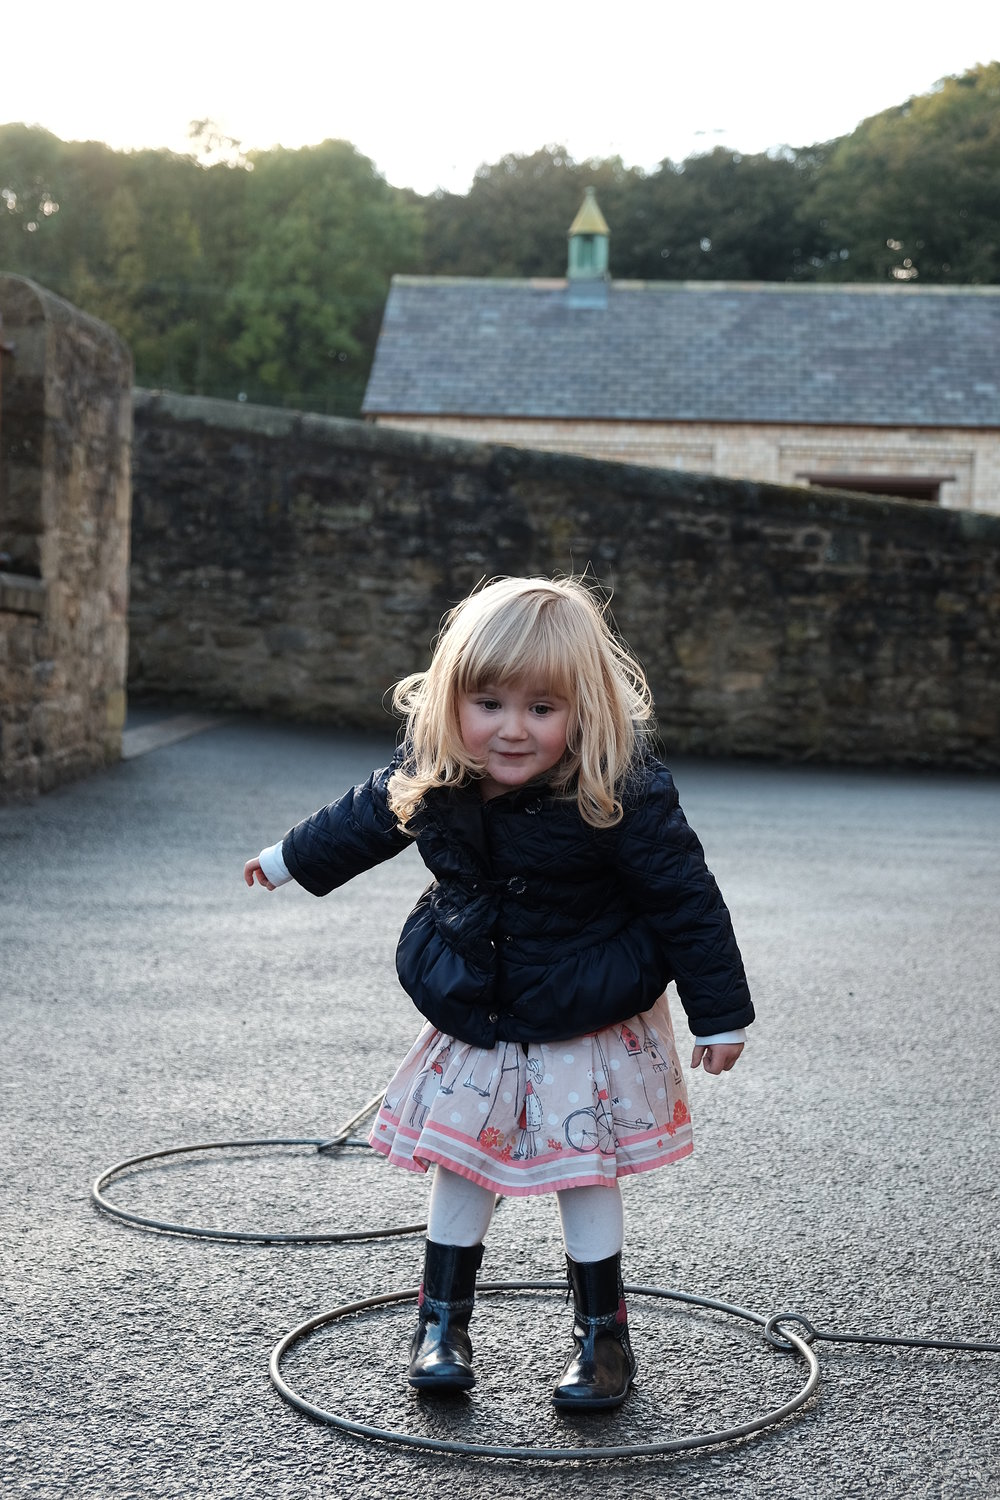 Sophie plays hoops at Beamish